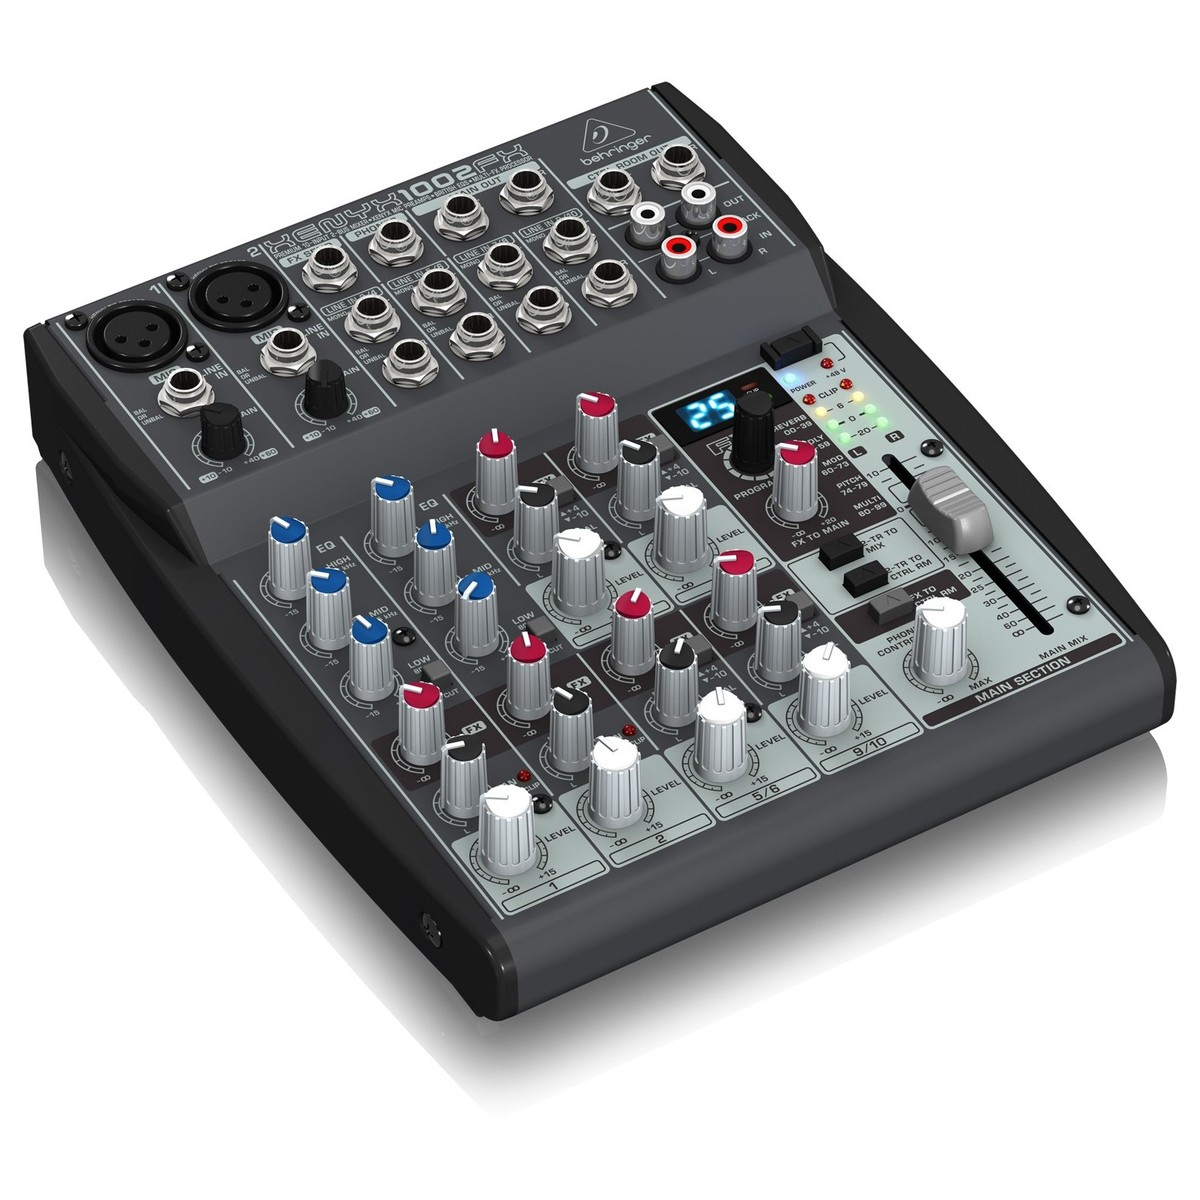 Image of Behringer Xenyx 1002FX Mixer